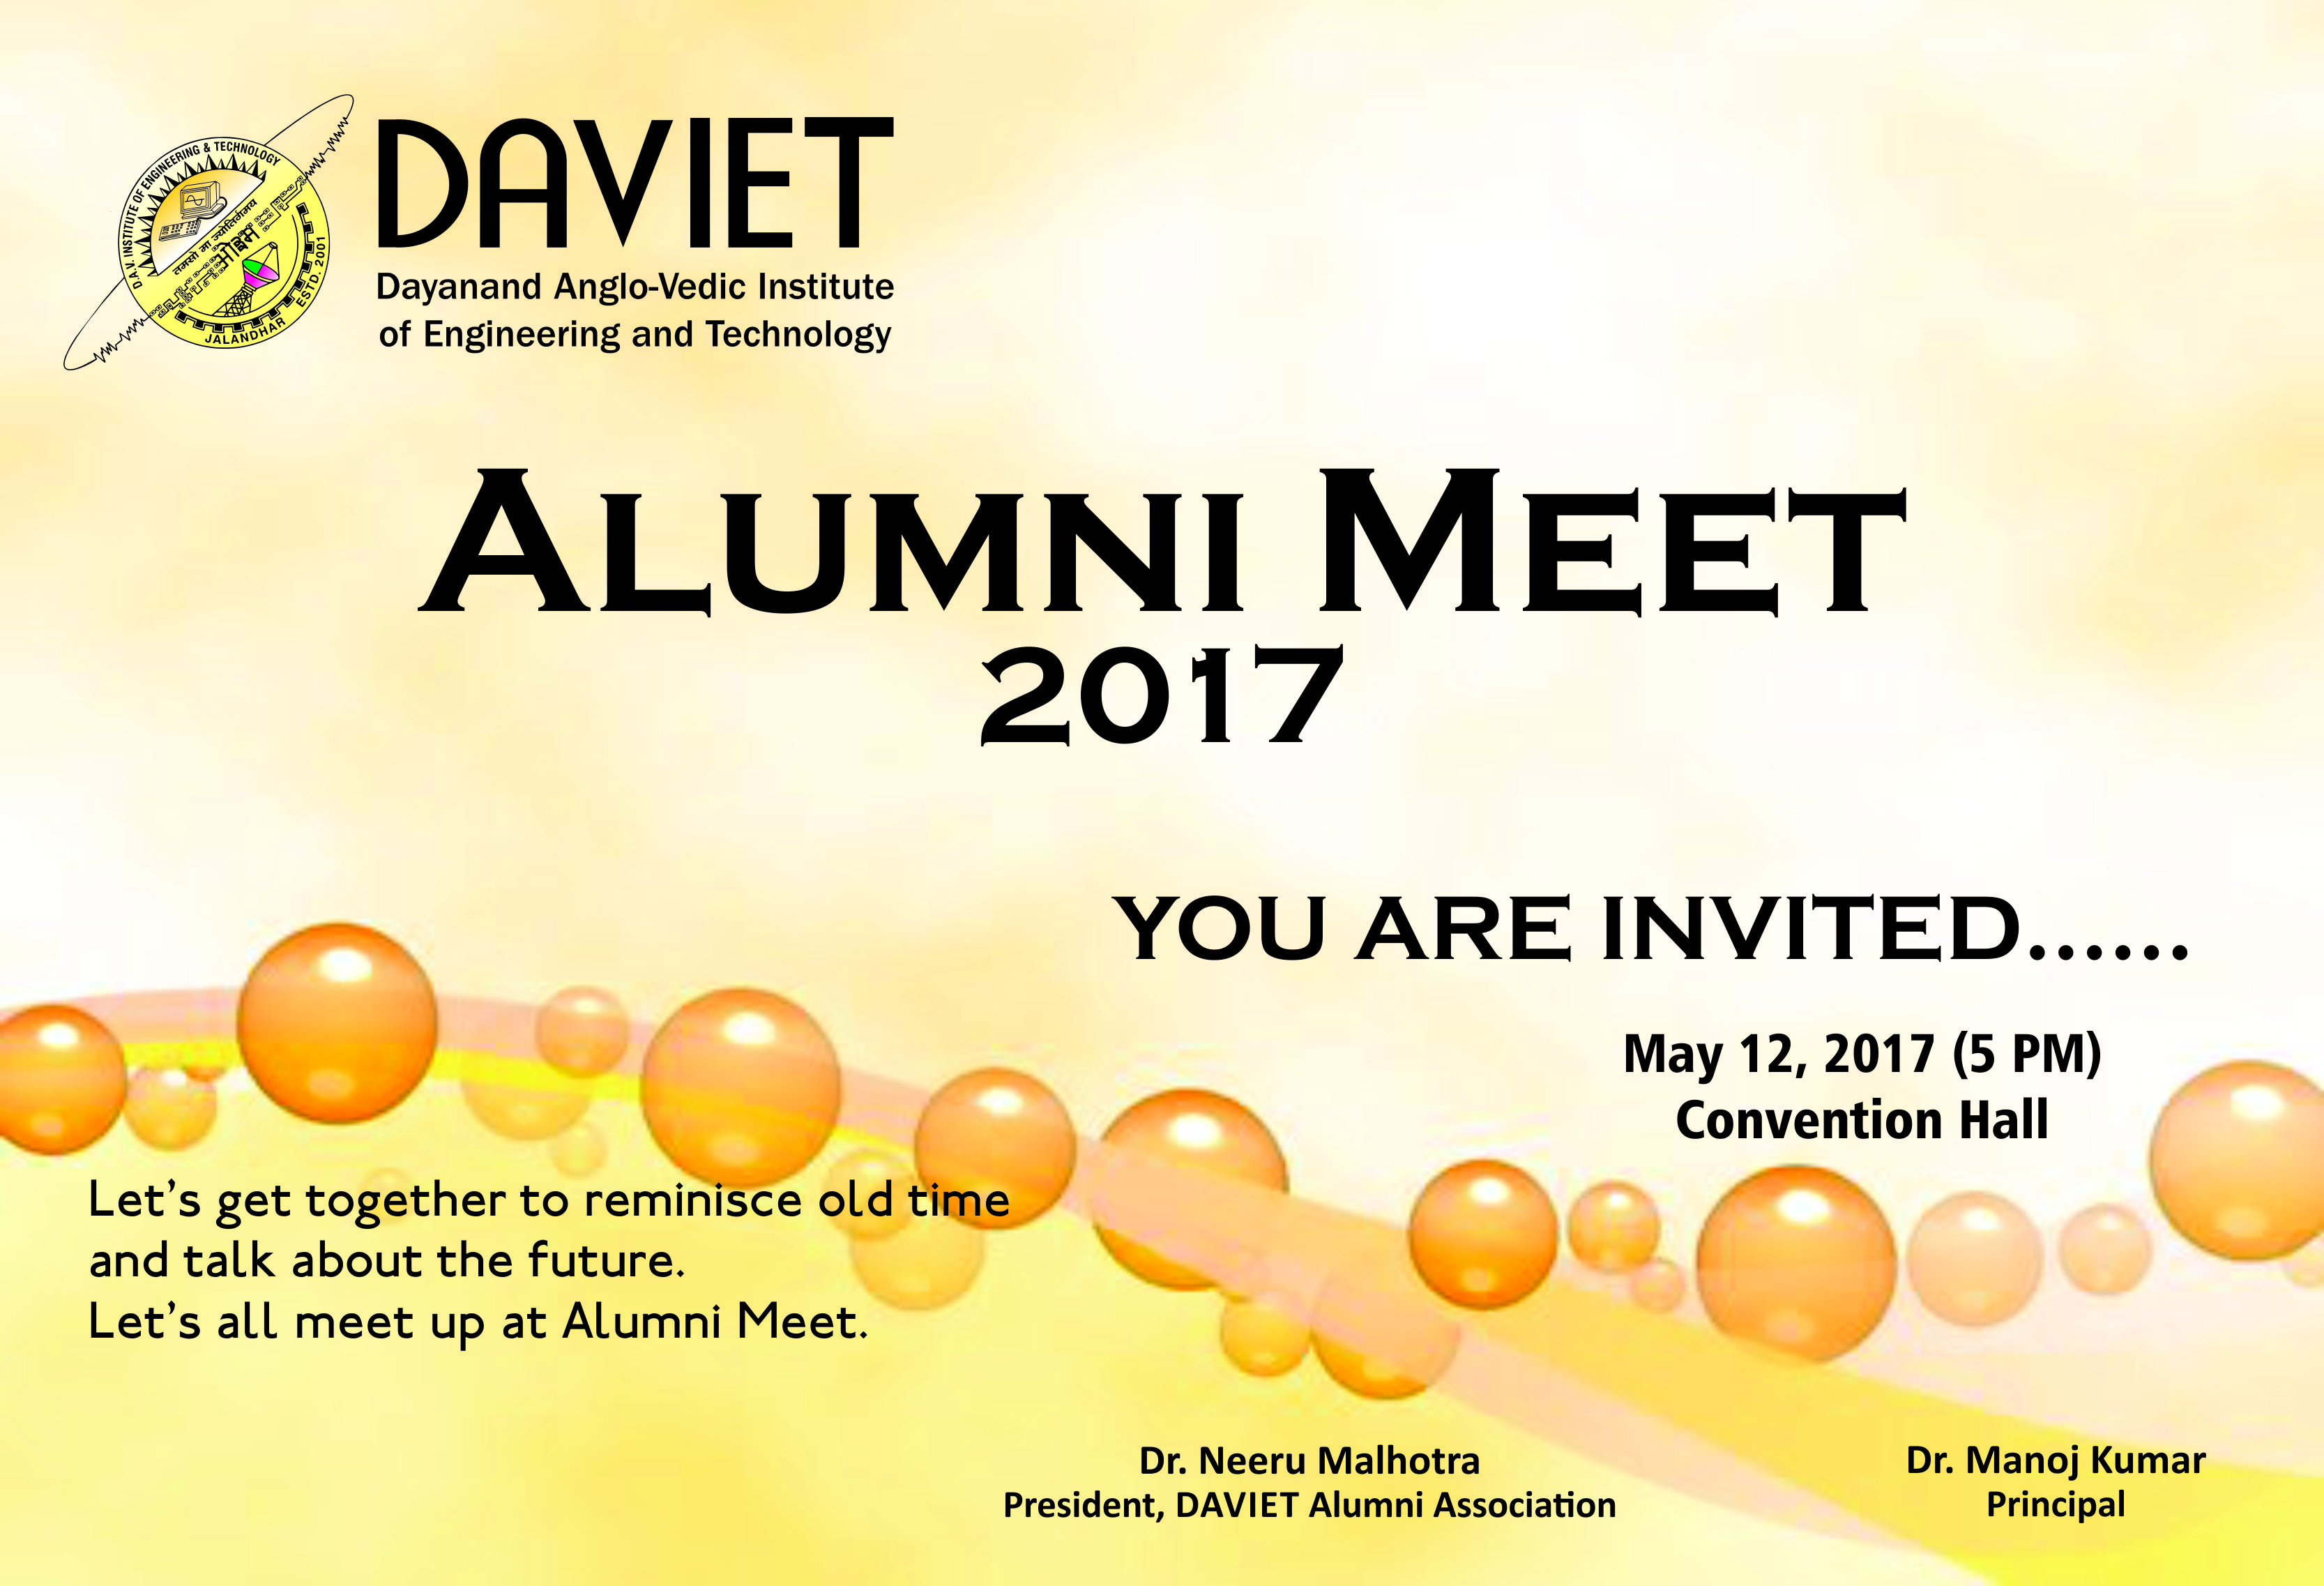 alumni meet invitation quotes